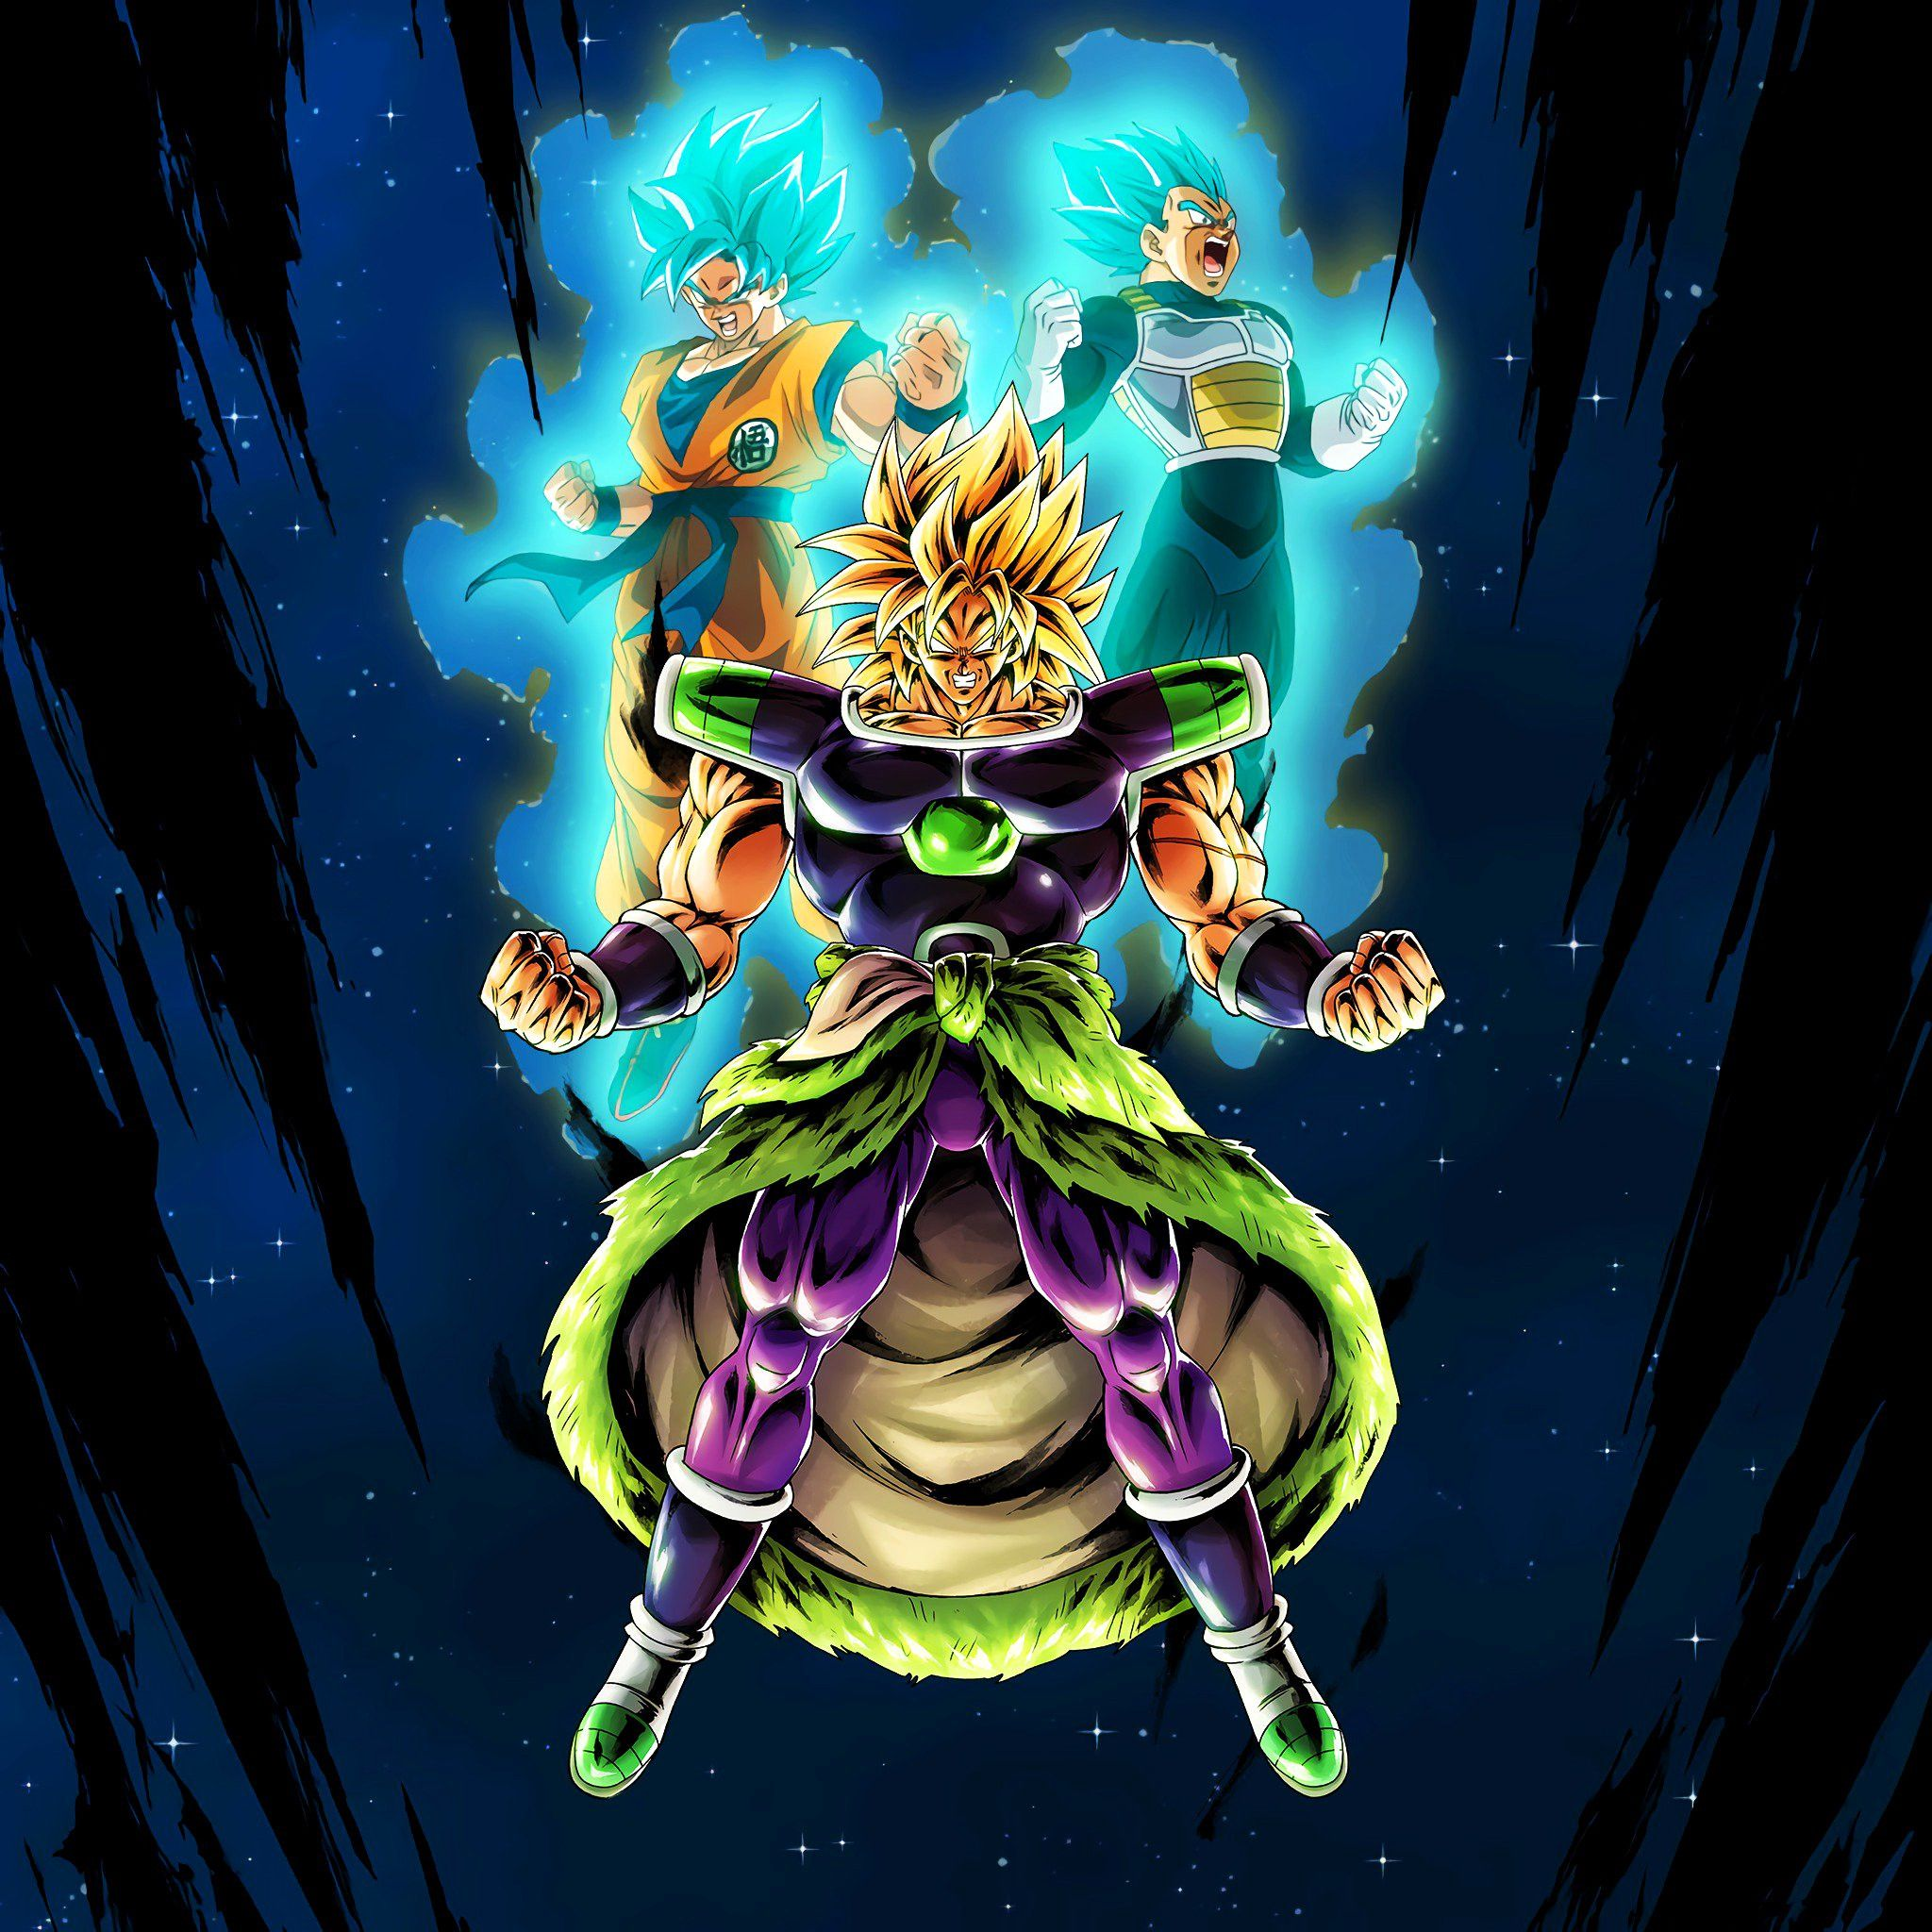 New Broly Ssjfp Wallpaper For Everyone Dragonballlegends